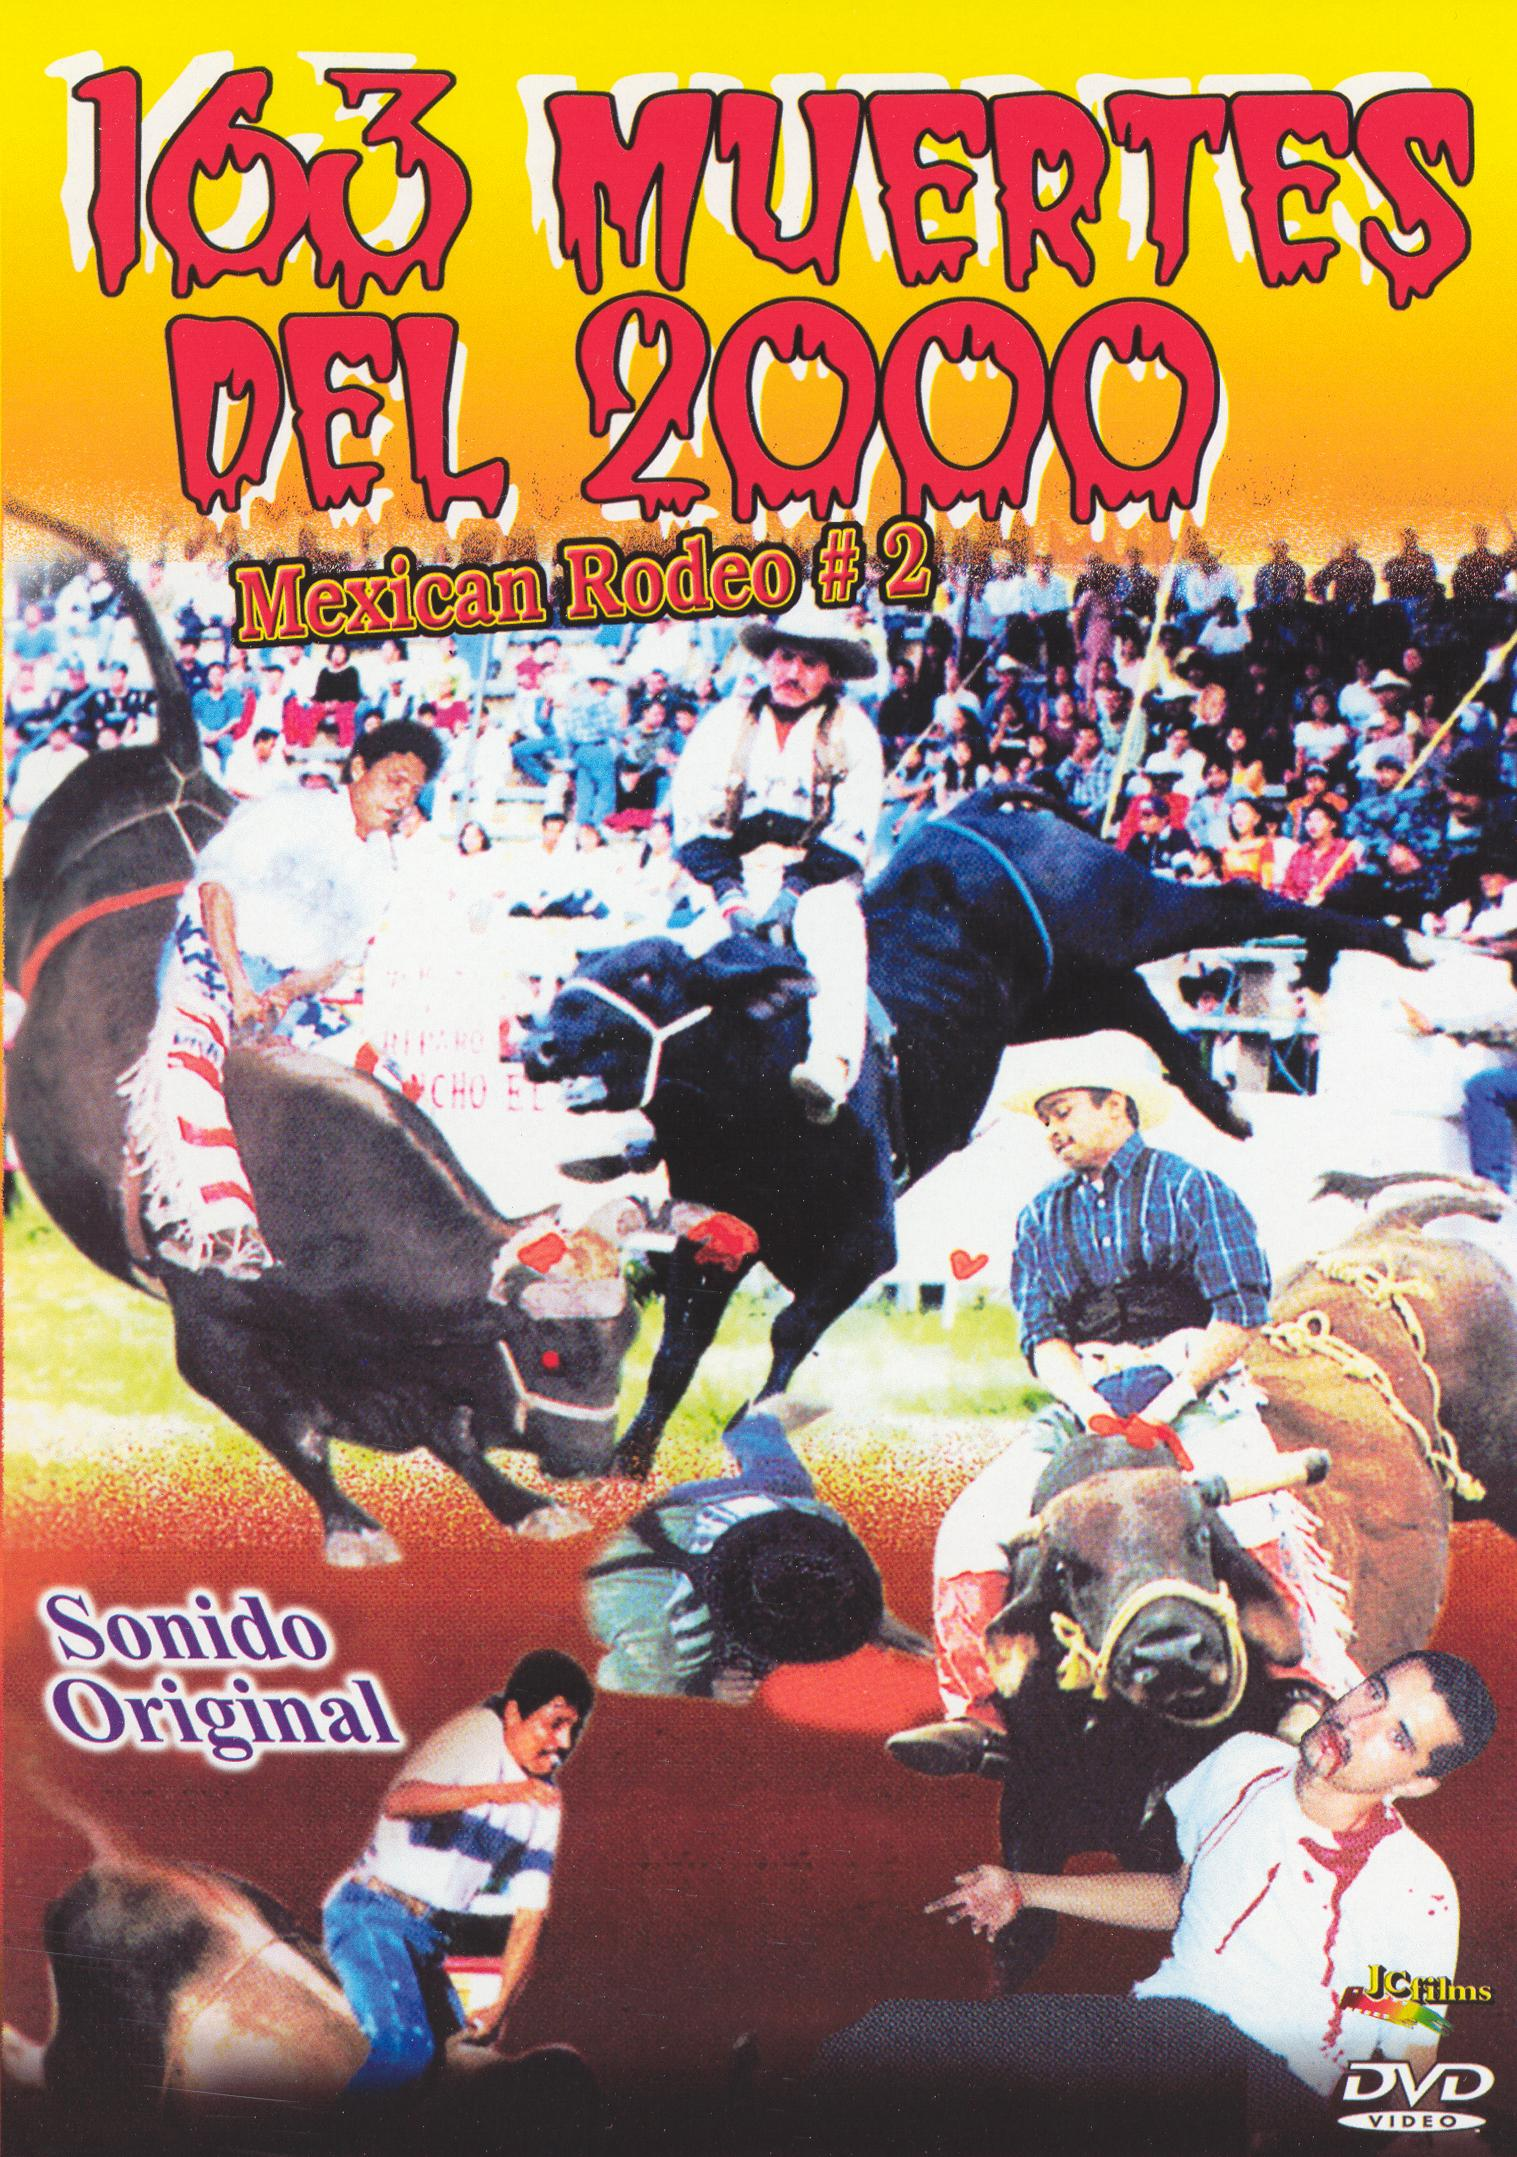 163 Muertes Del 2000: Mexican Rodeo #2